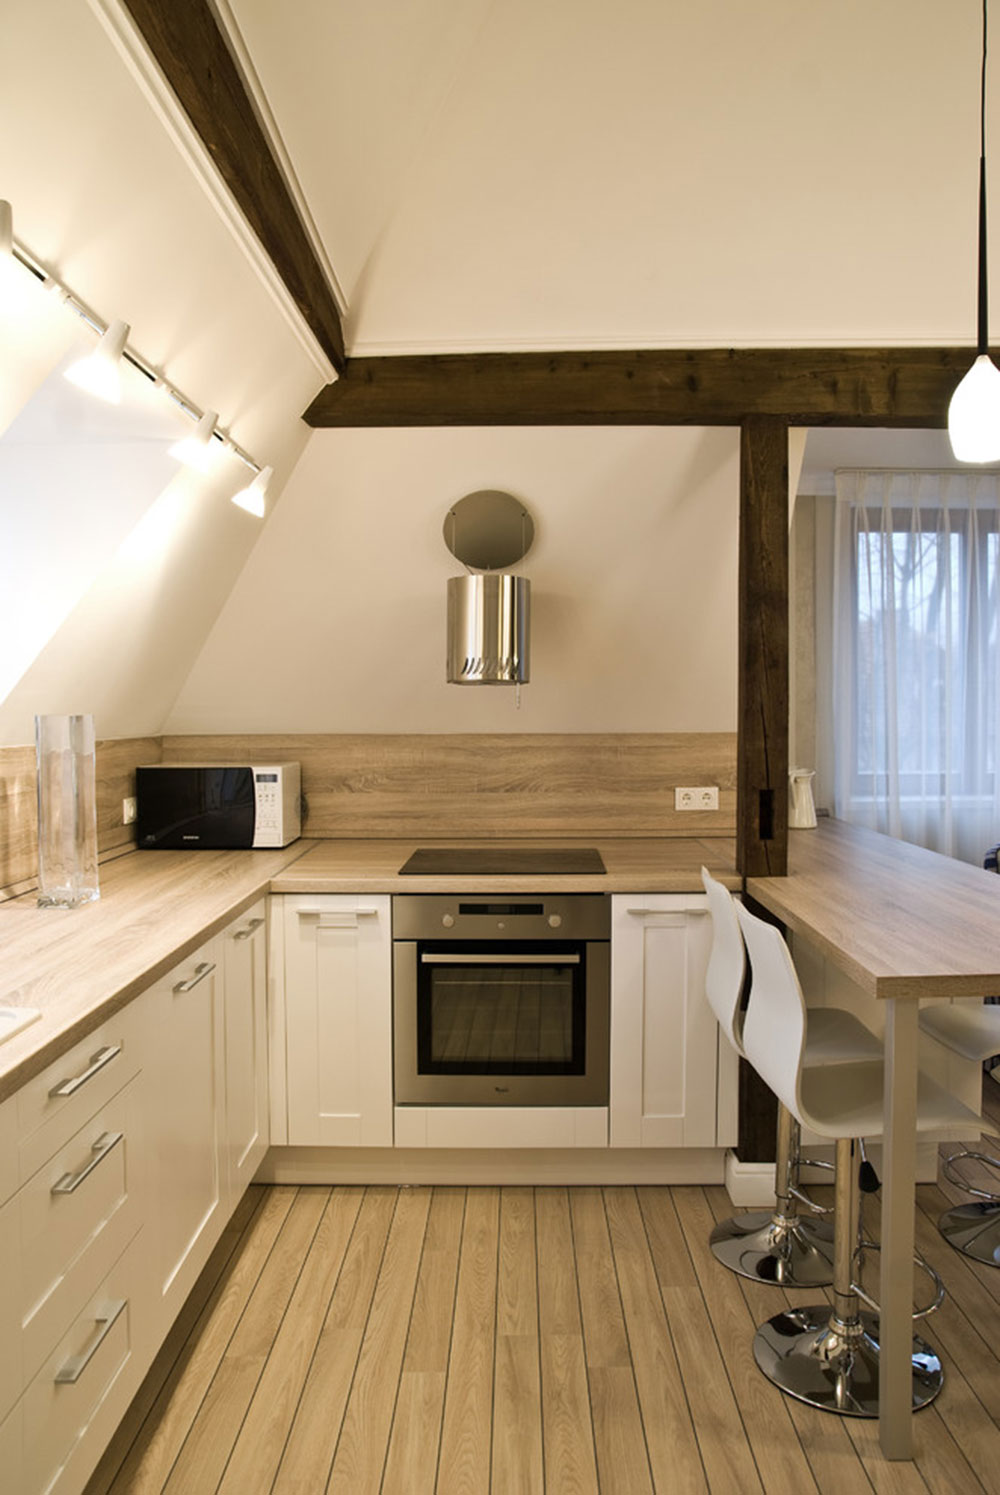 How To Make A Small Kitchen That Feel Bigger In Your Beautiful Home9 How To Make A Small Kitchen In Your Beautiful Home